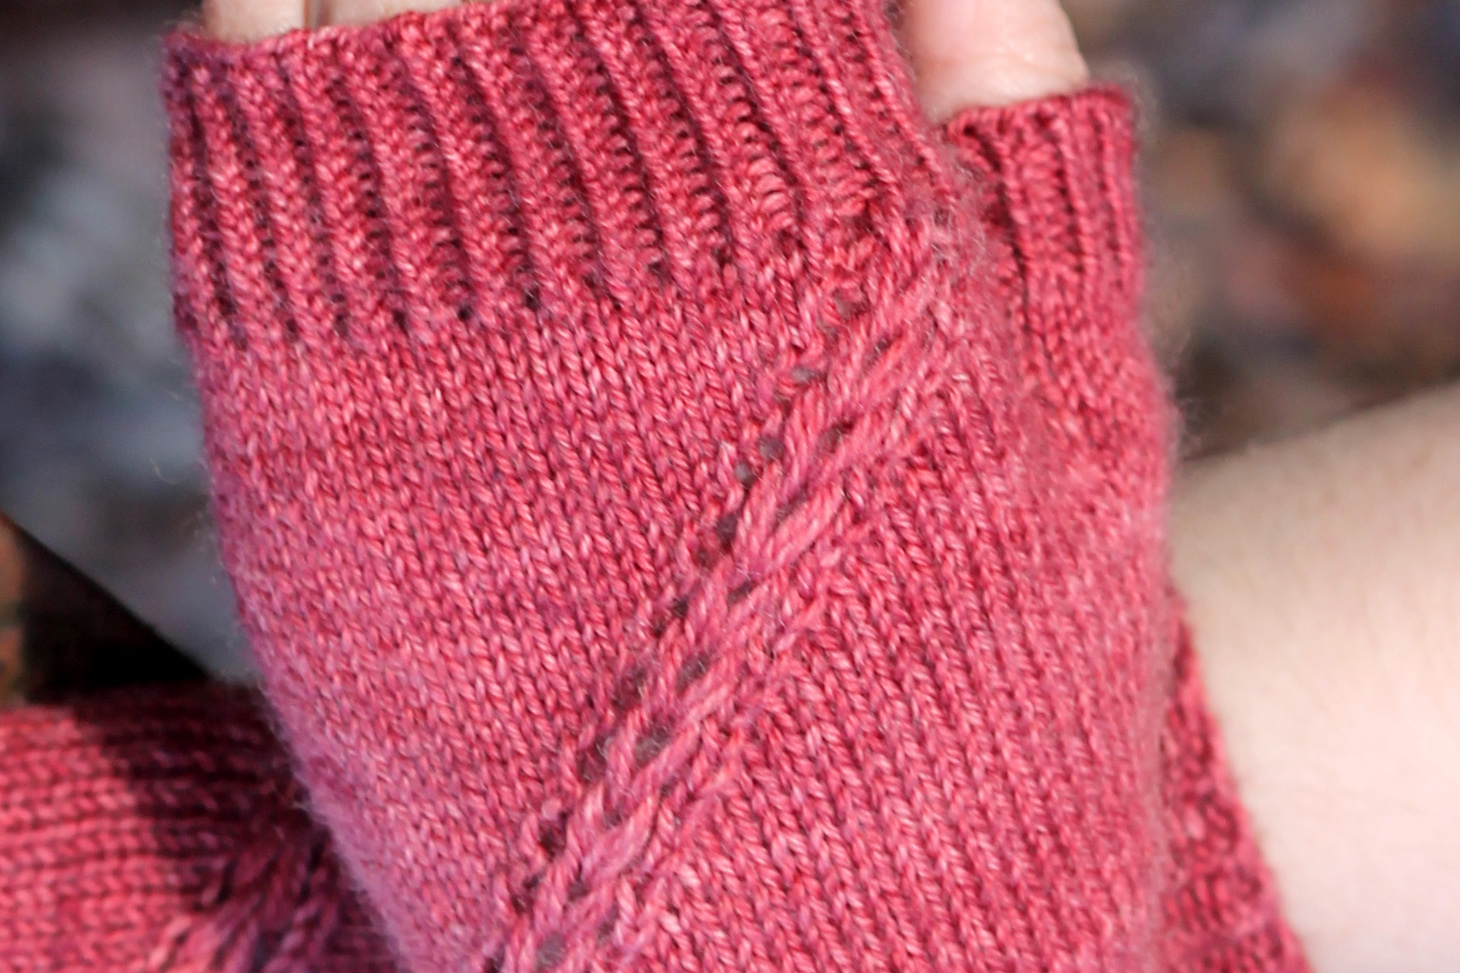 A close up on a slanted Drop Stitch Braid on fingerless mitts